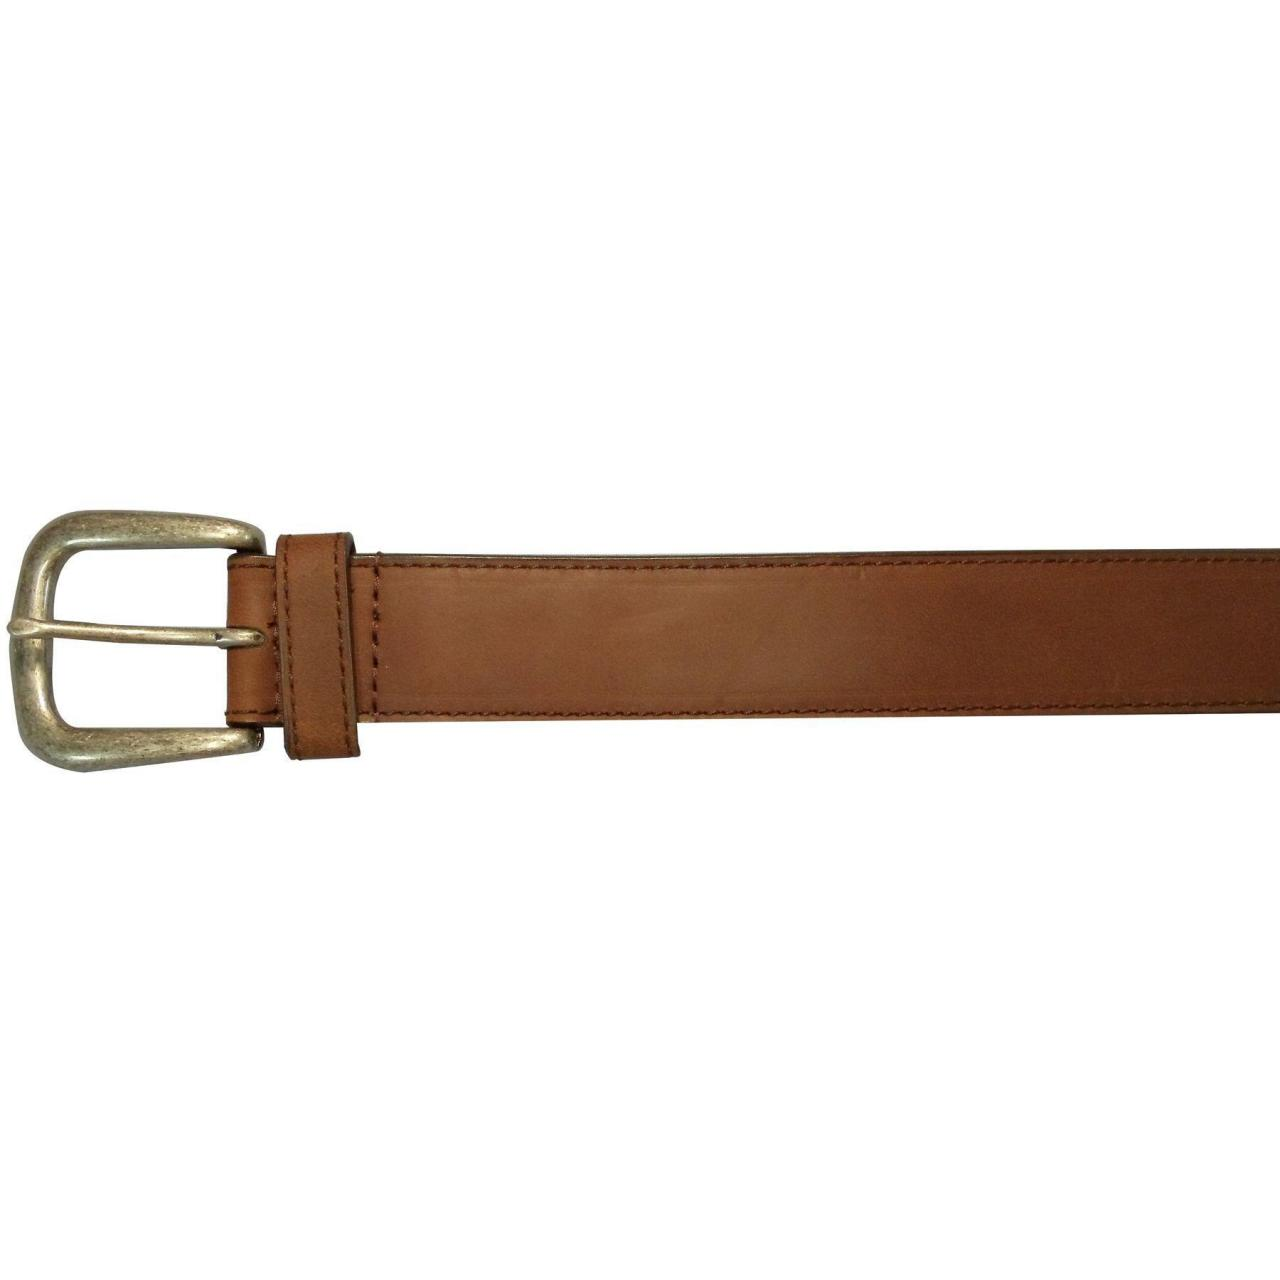 Buy cheap 42 PLAIN BROWN LEATHER FIELD & STREAM BELT from wholesalers